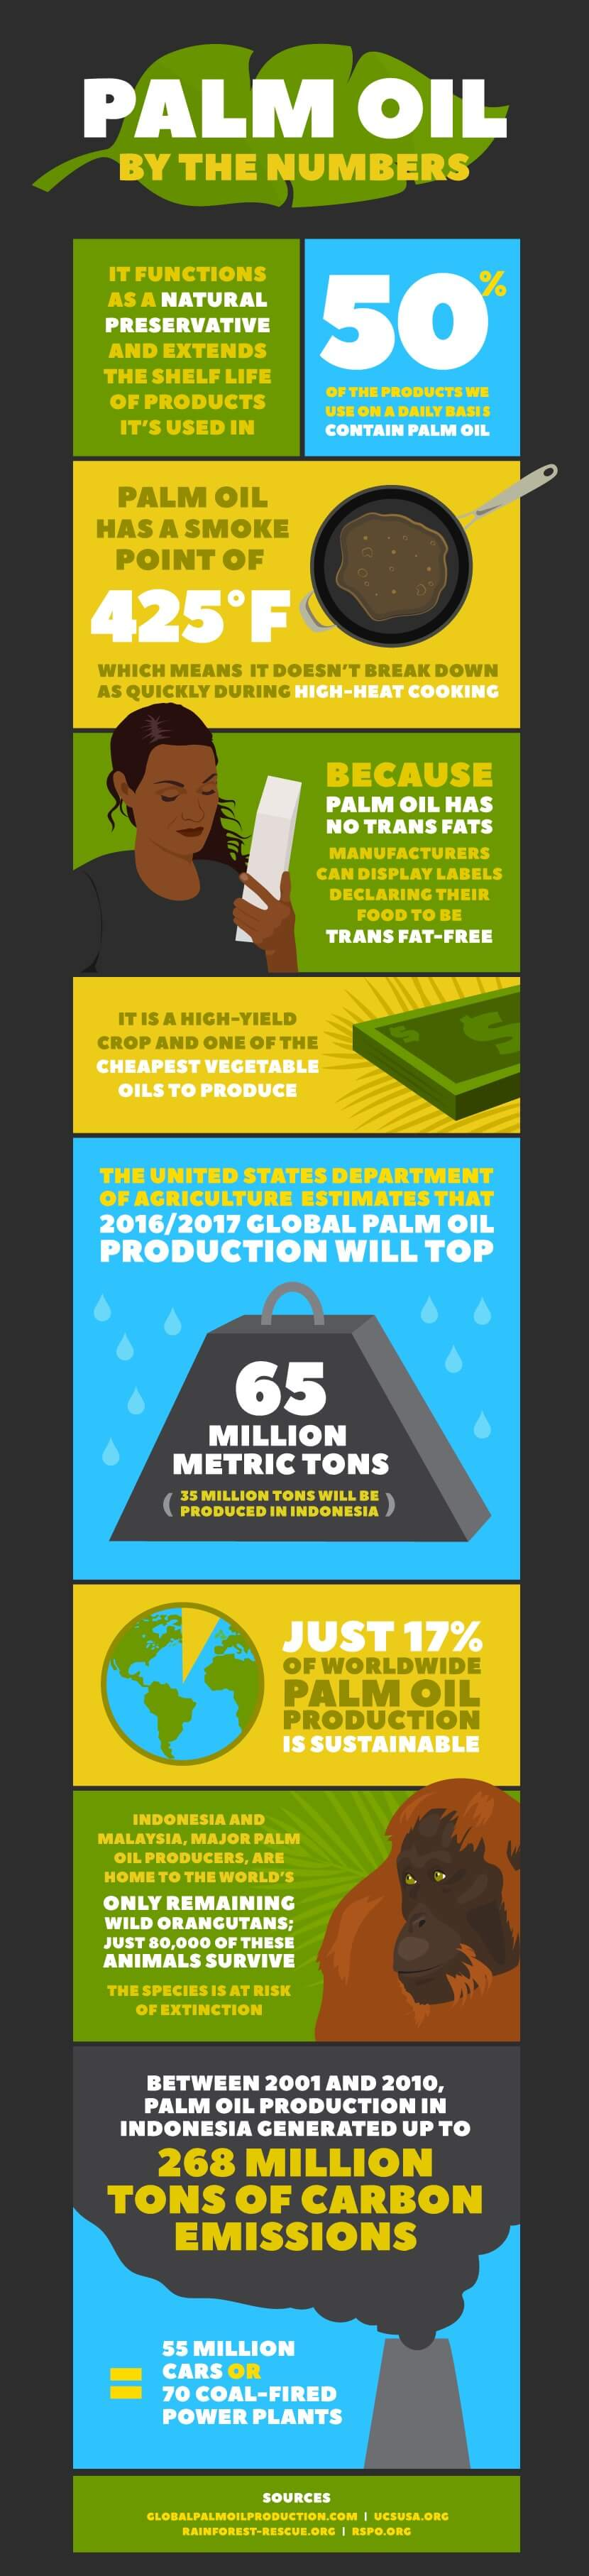 palm oil by the numbers